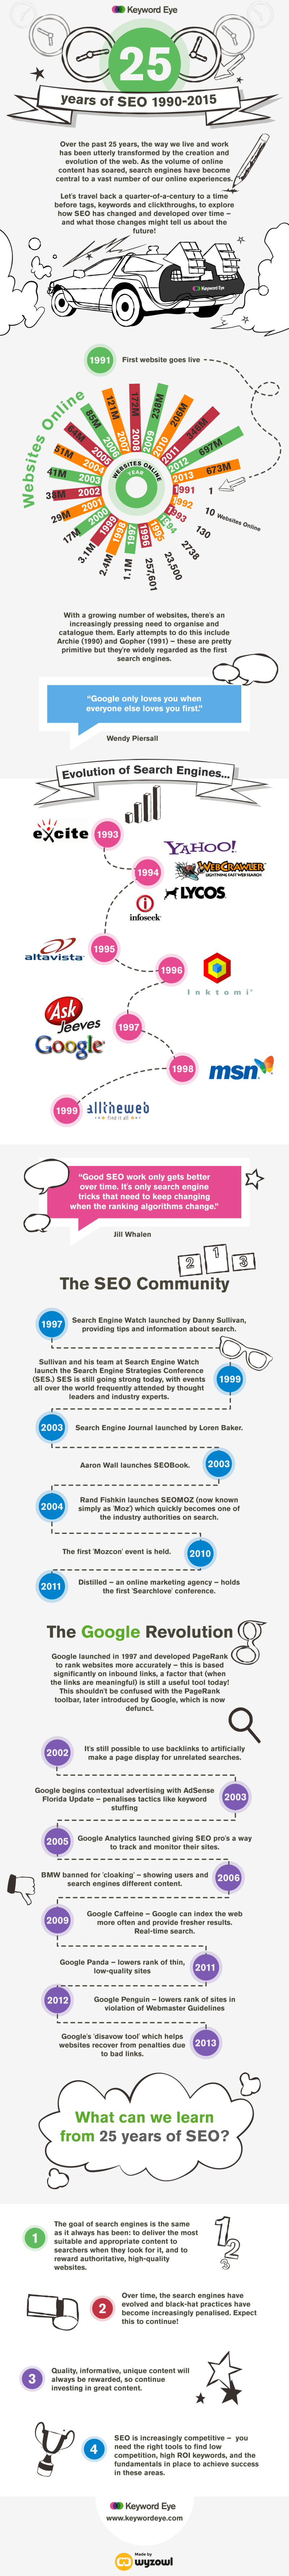 25 Years of SEO